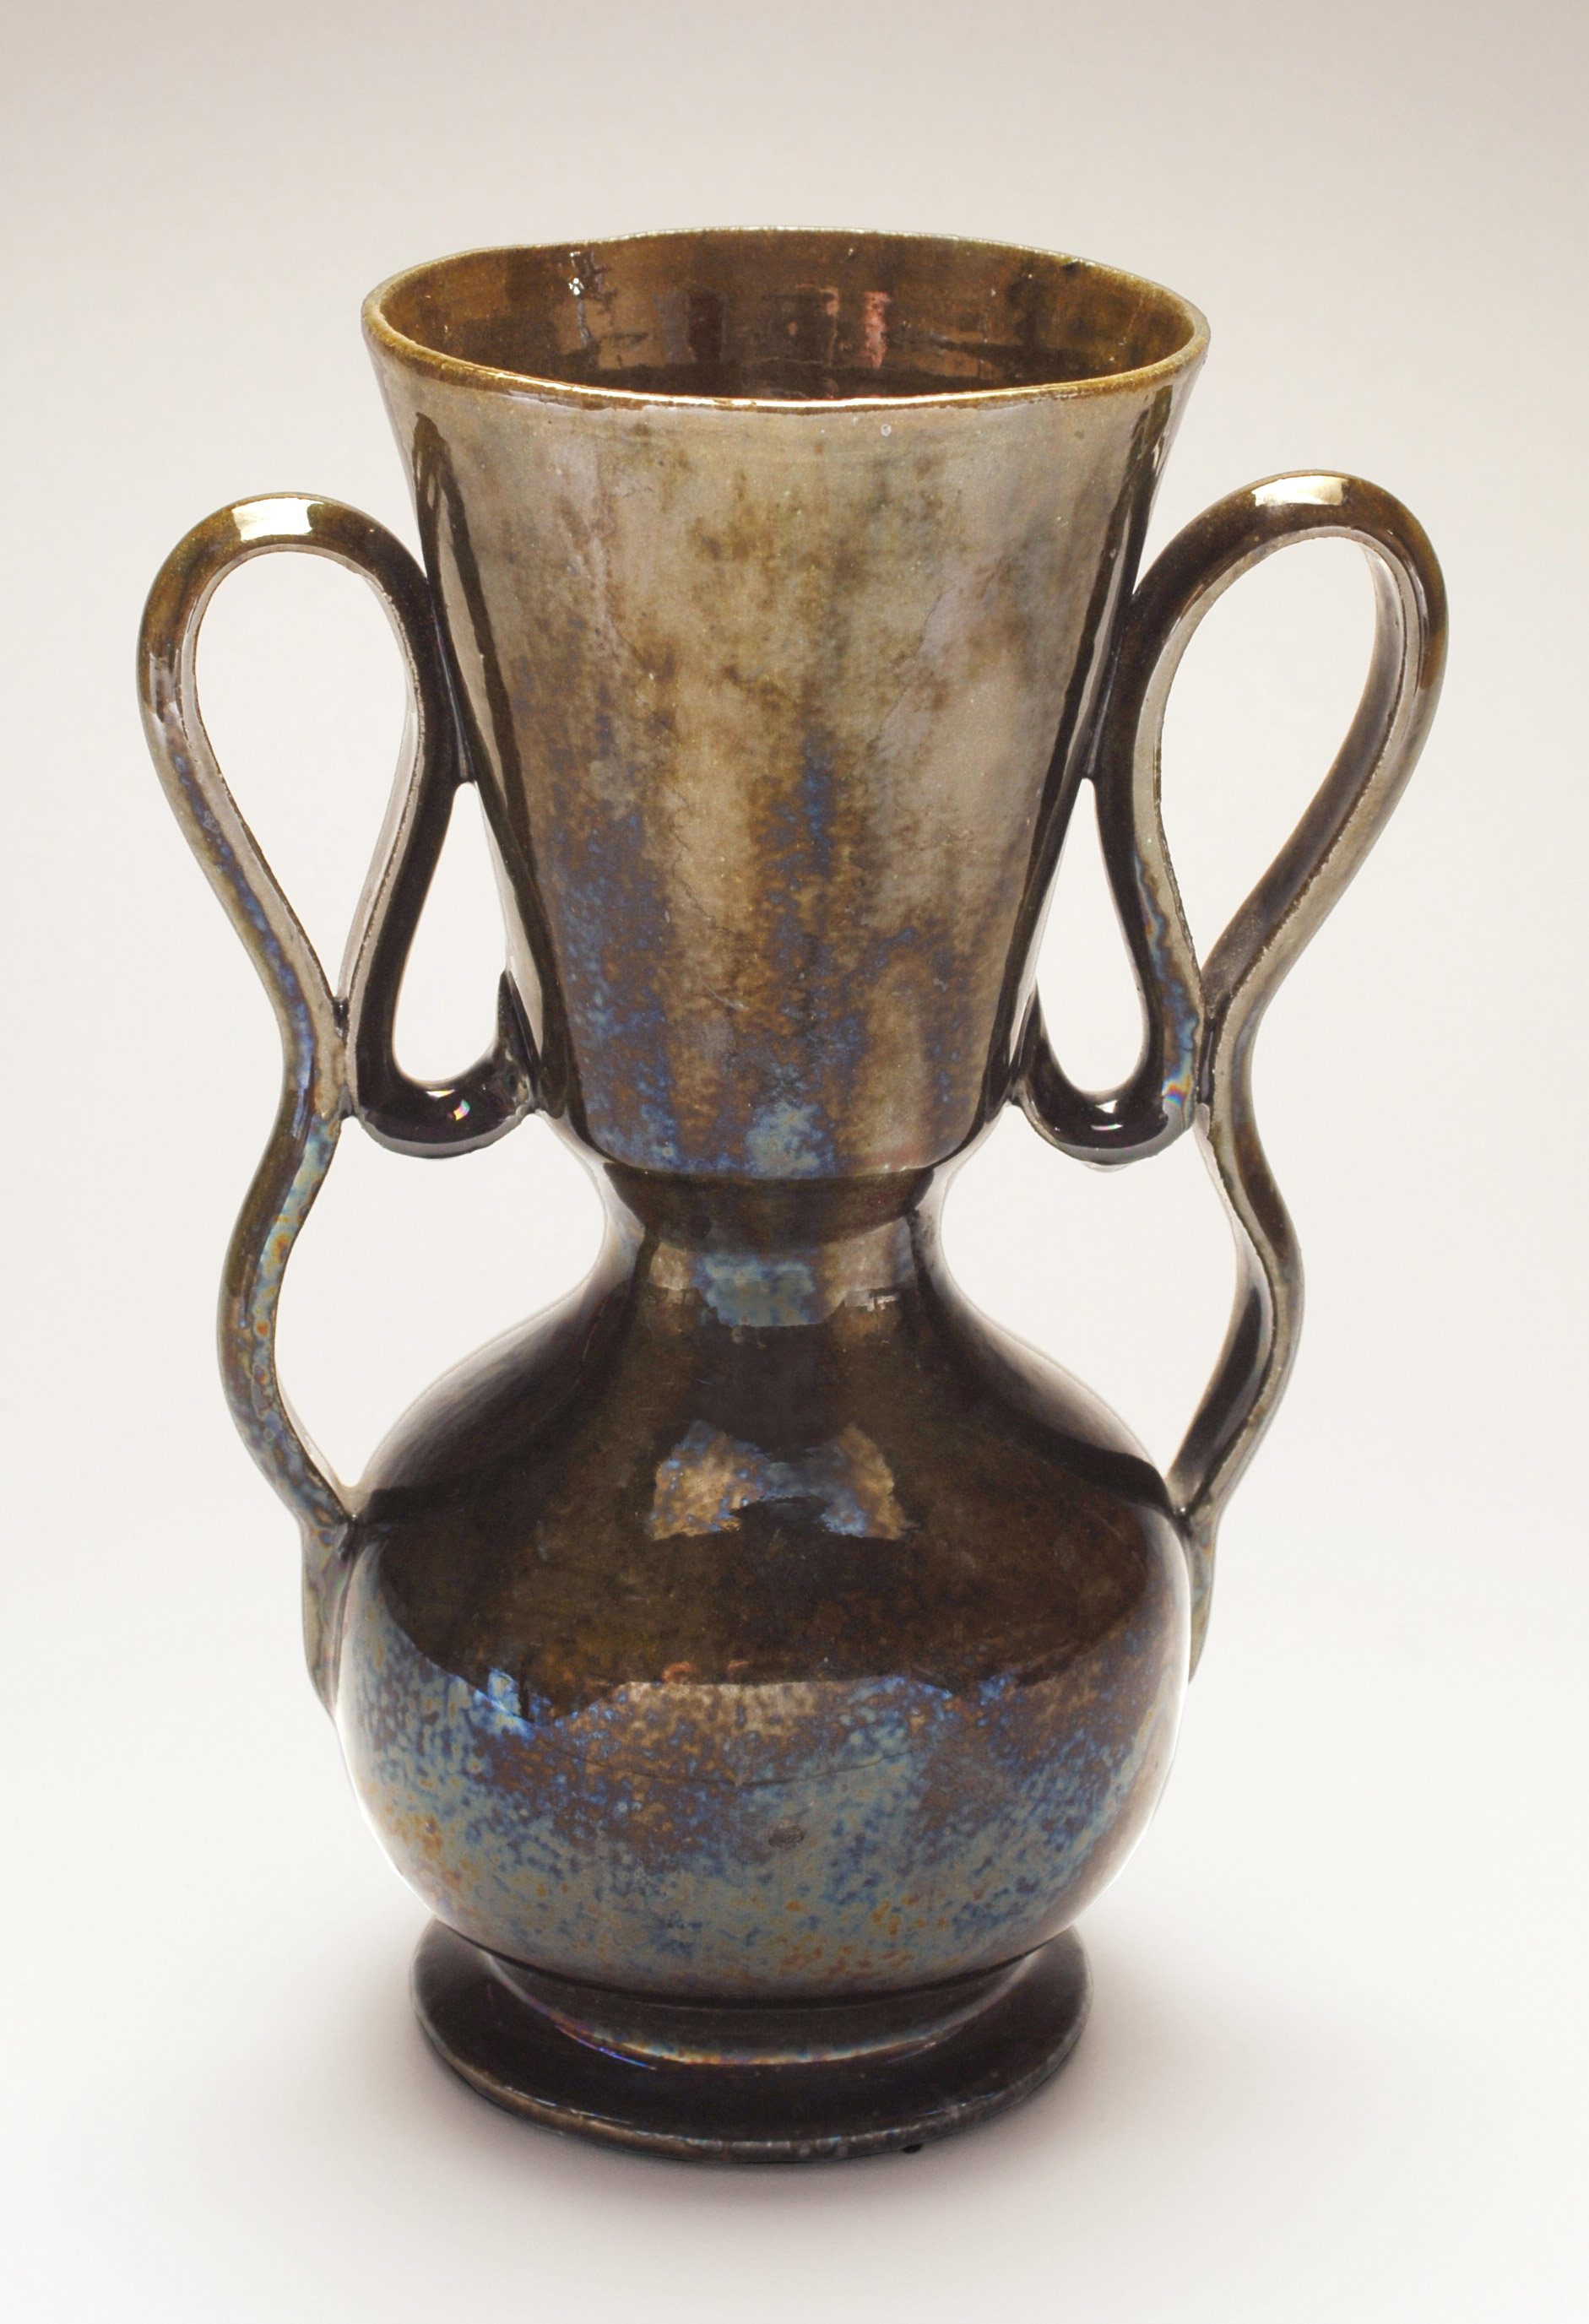 George ohr pottery method in his madness double handled vase c 1898 glazed ceramic 7 34in reviewsmspy